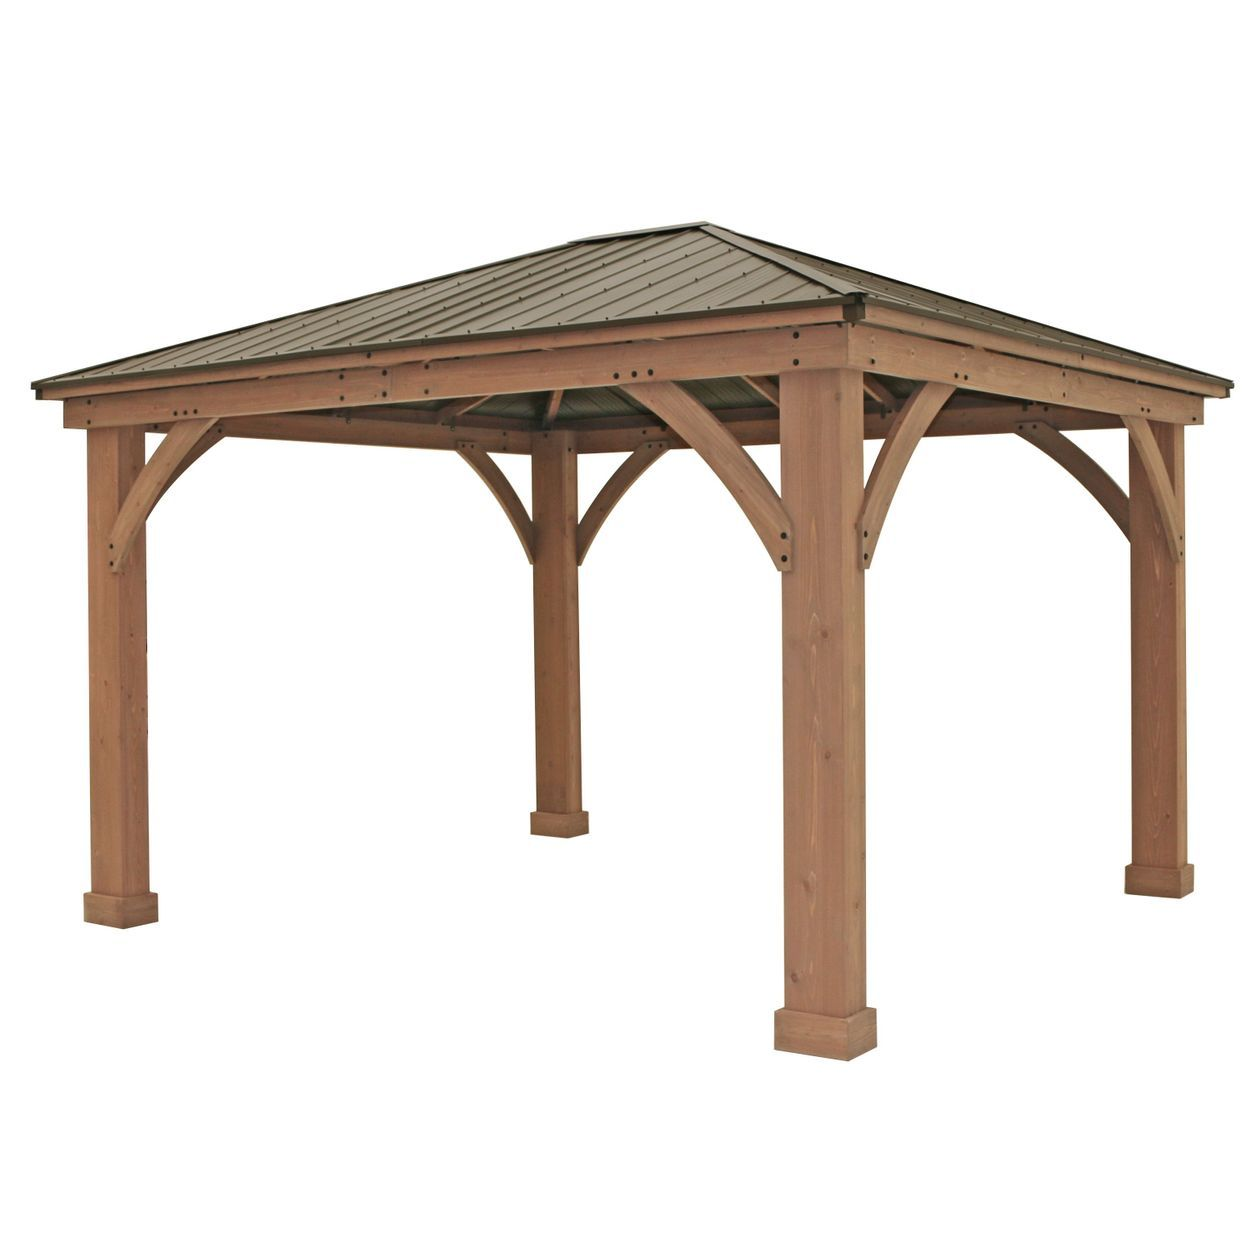 12 X 14 Cedar Gazebo With Aluminum Roof In 2020 Outdoor Pergola Pergola Gazebo